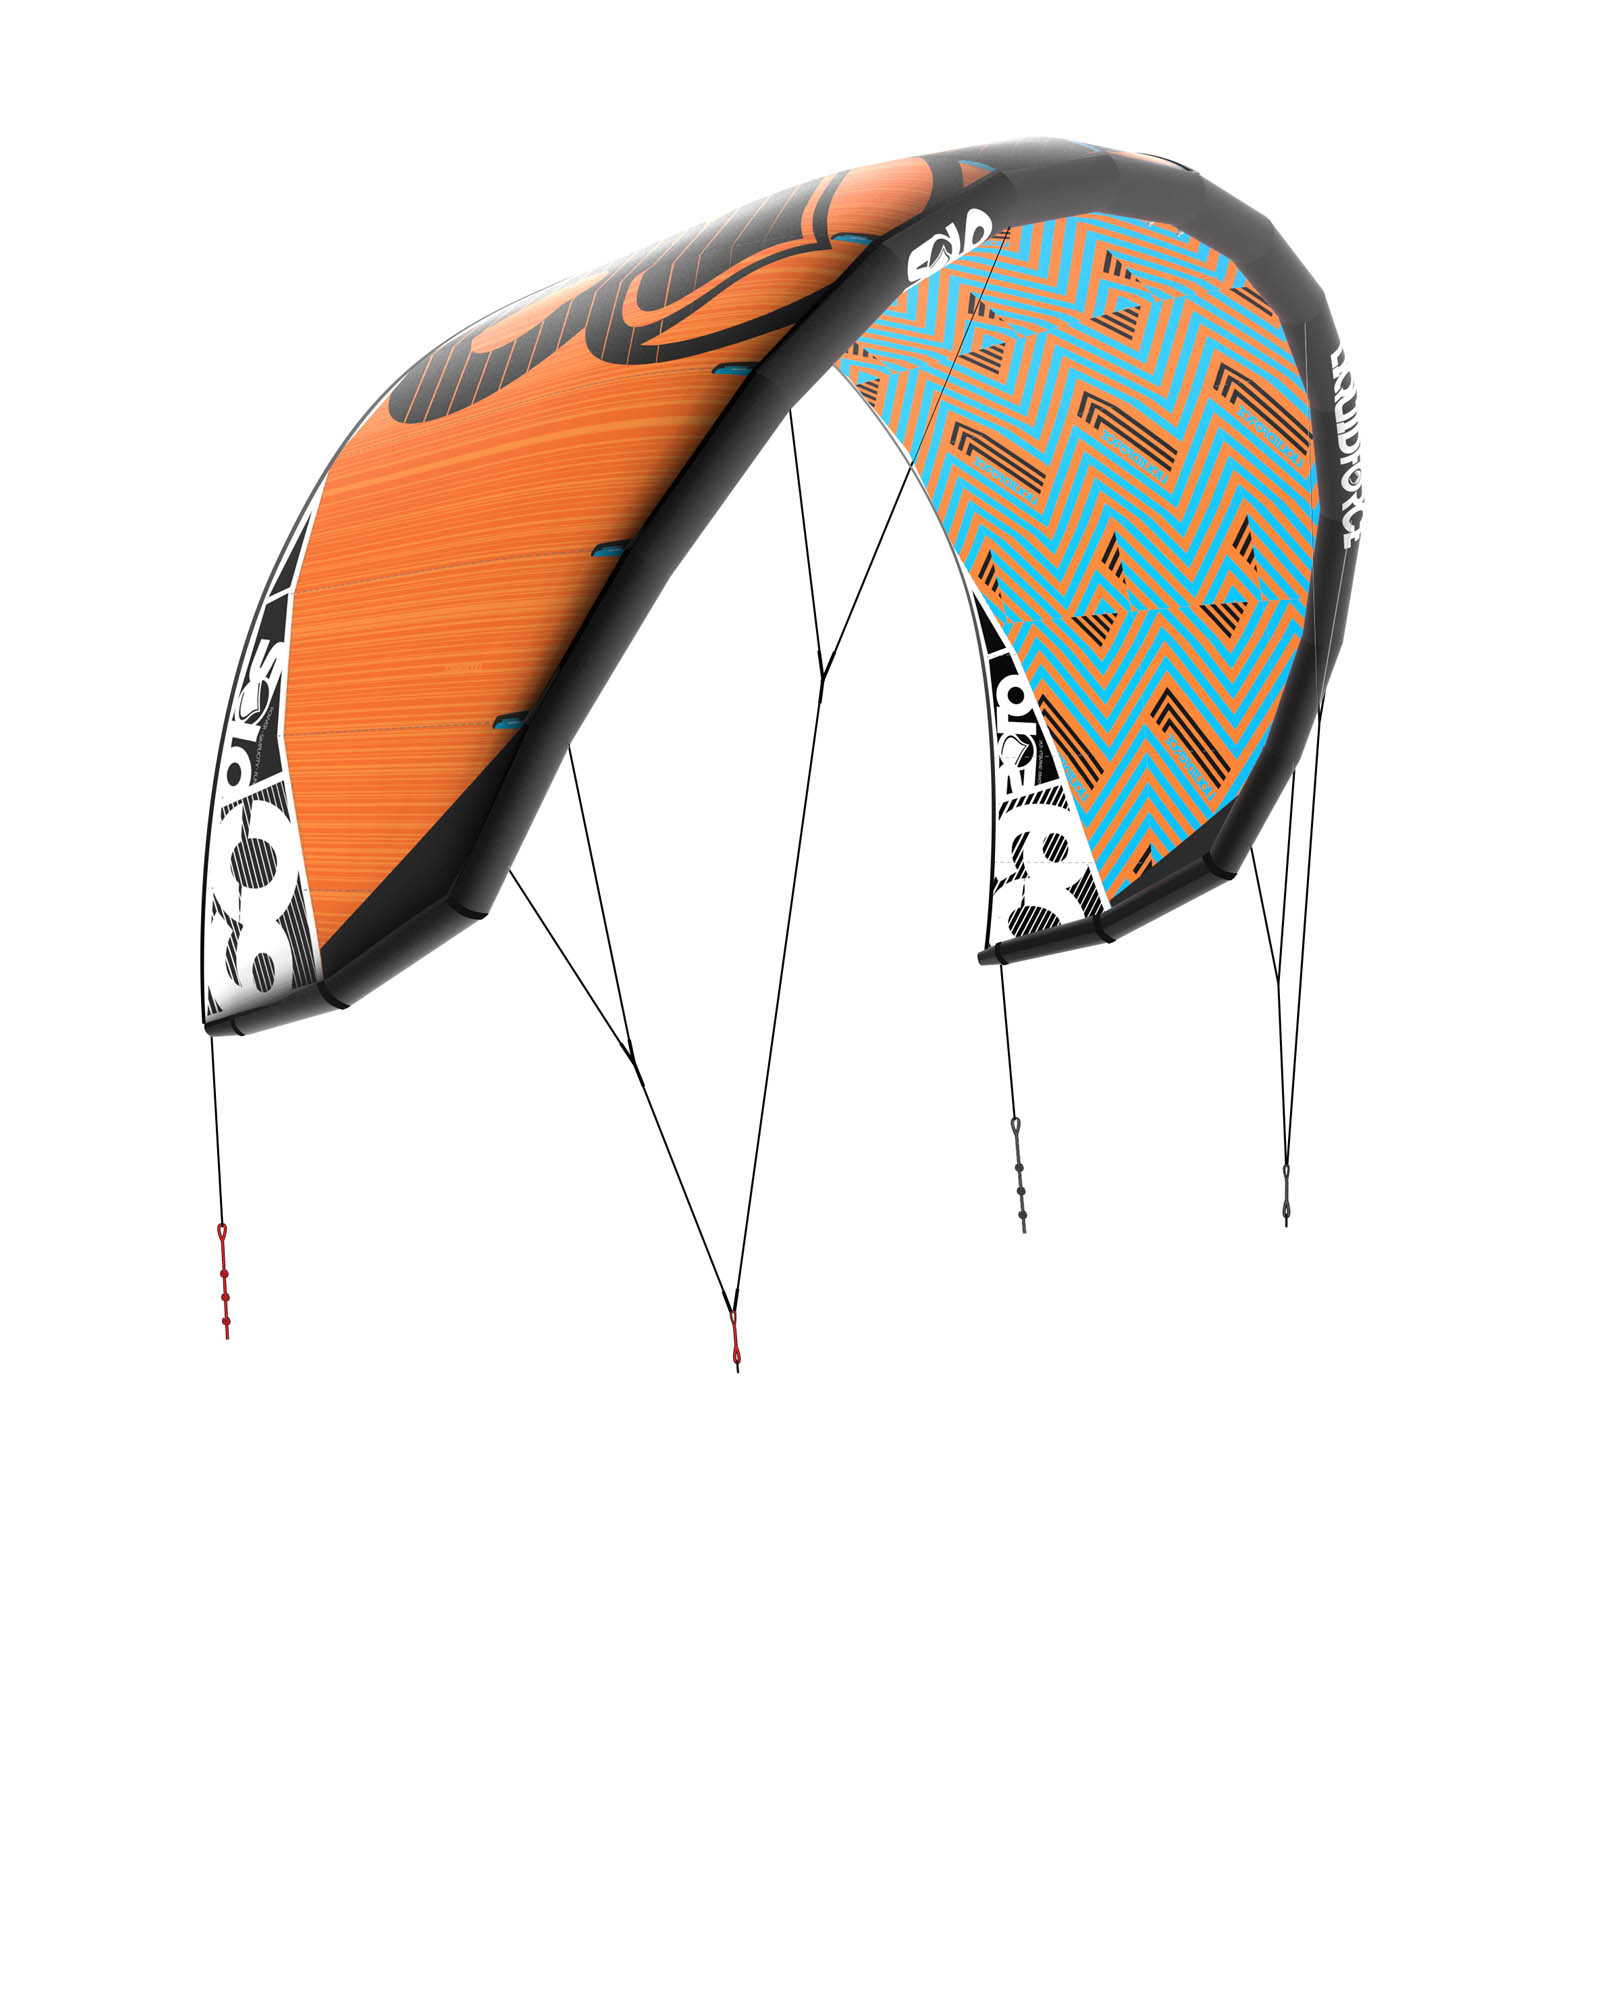 Kites LIQUID FORCE Solo v3 (3,5až17,5m) (2018/2019) freeride/foil